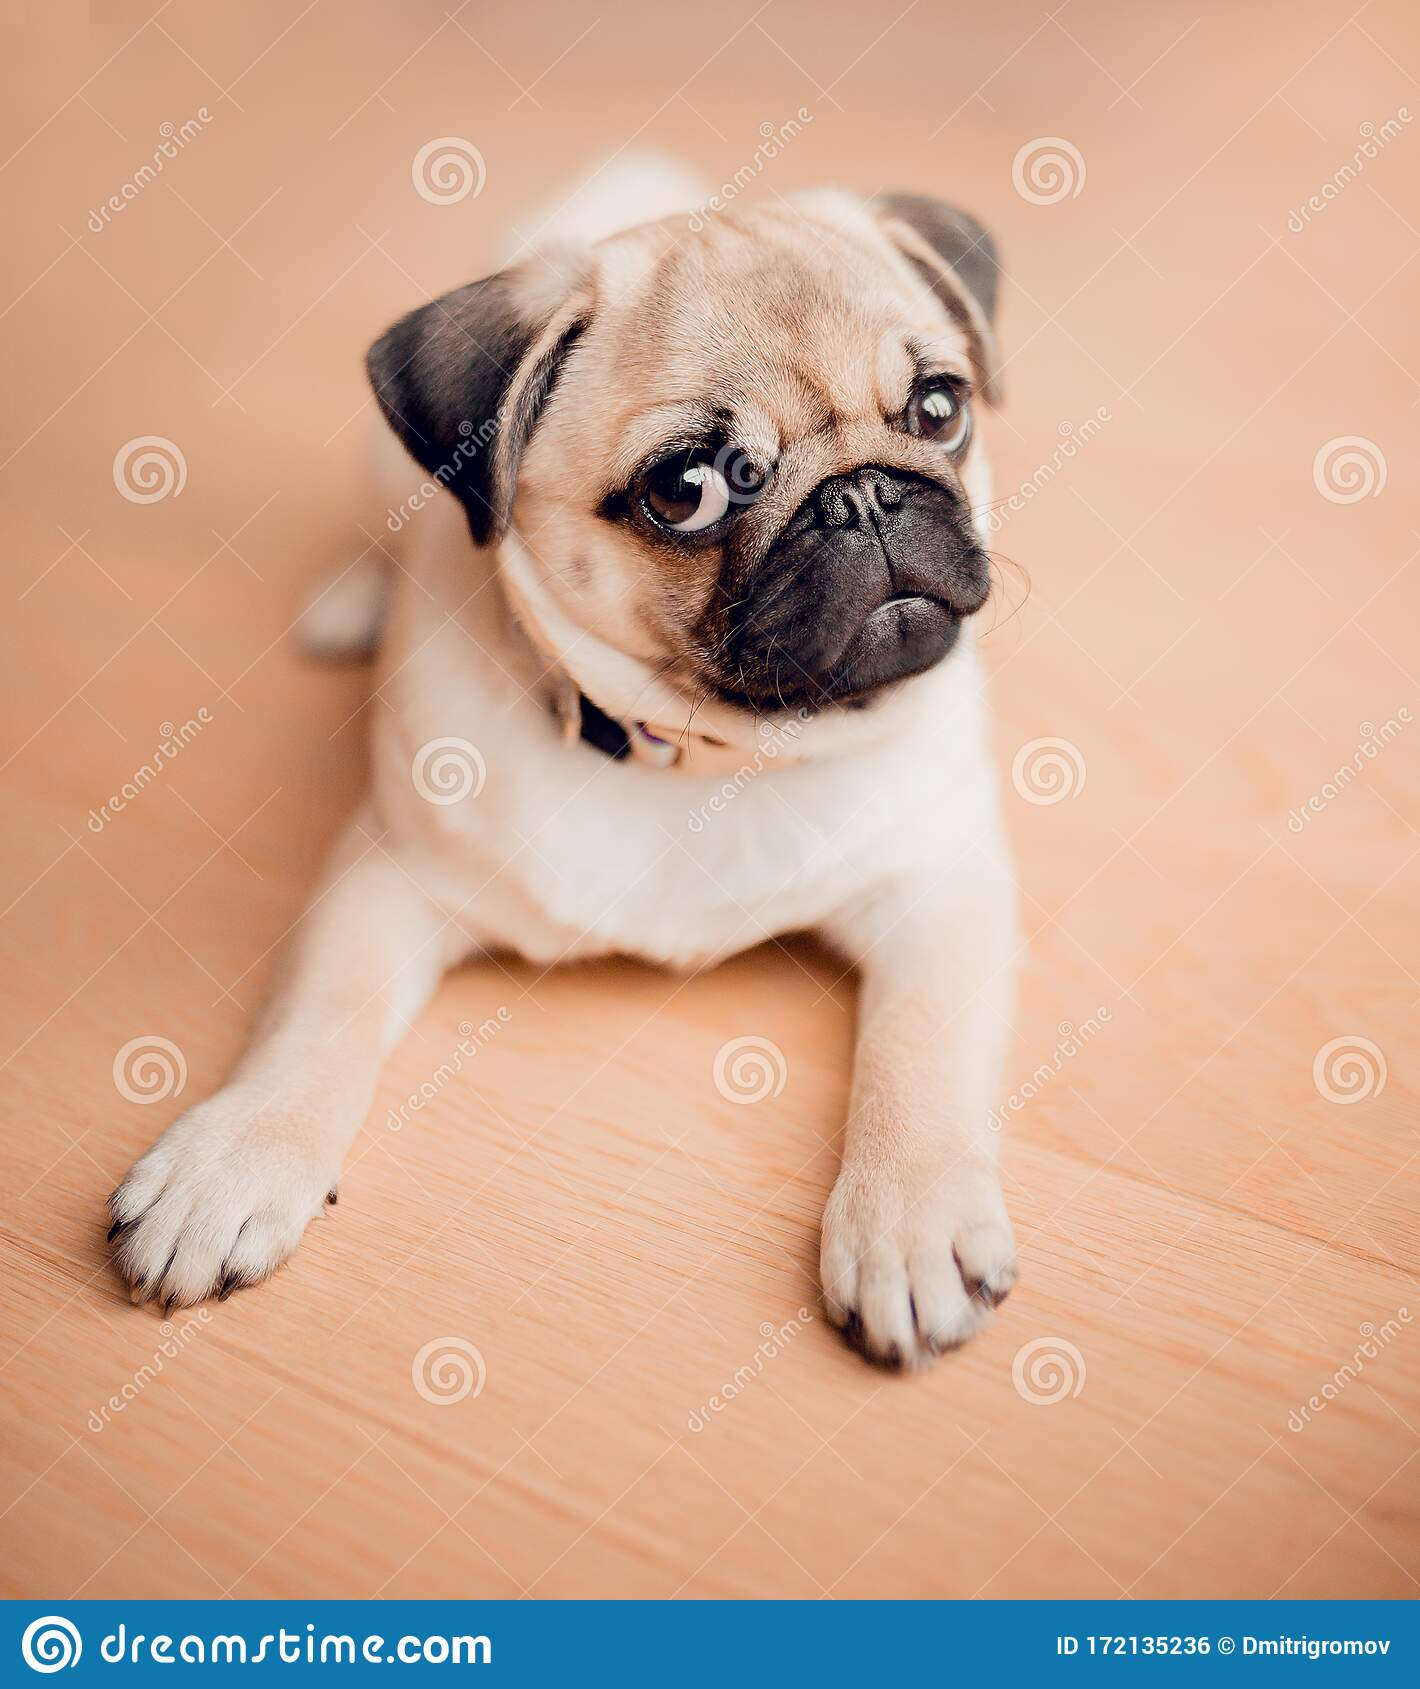 New Born Baby Pug Dog In Home Portrait Of Beautiful Female Pug Puppy Dog Stock Photo Image Of Brown Adorable 172135236